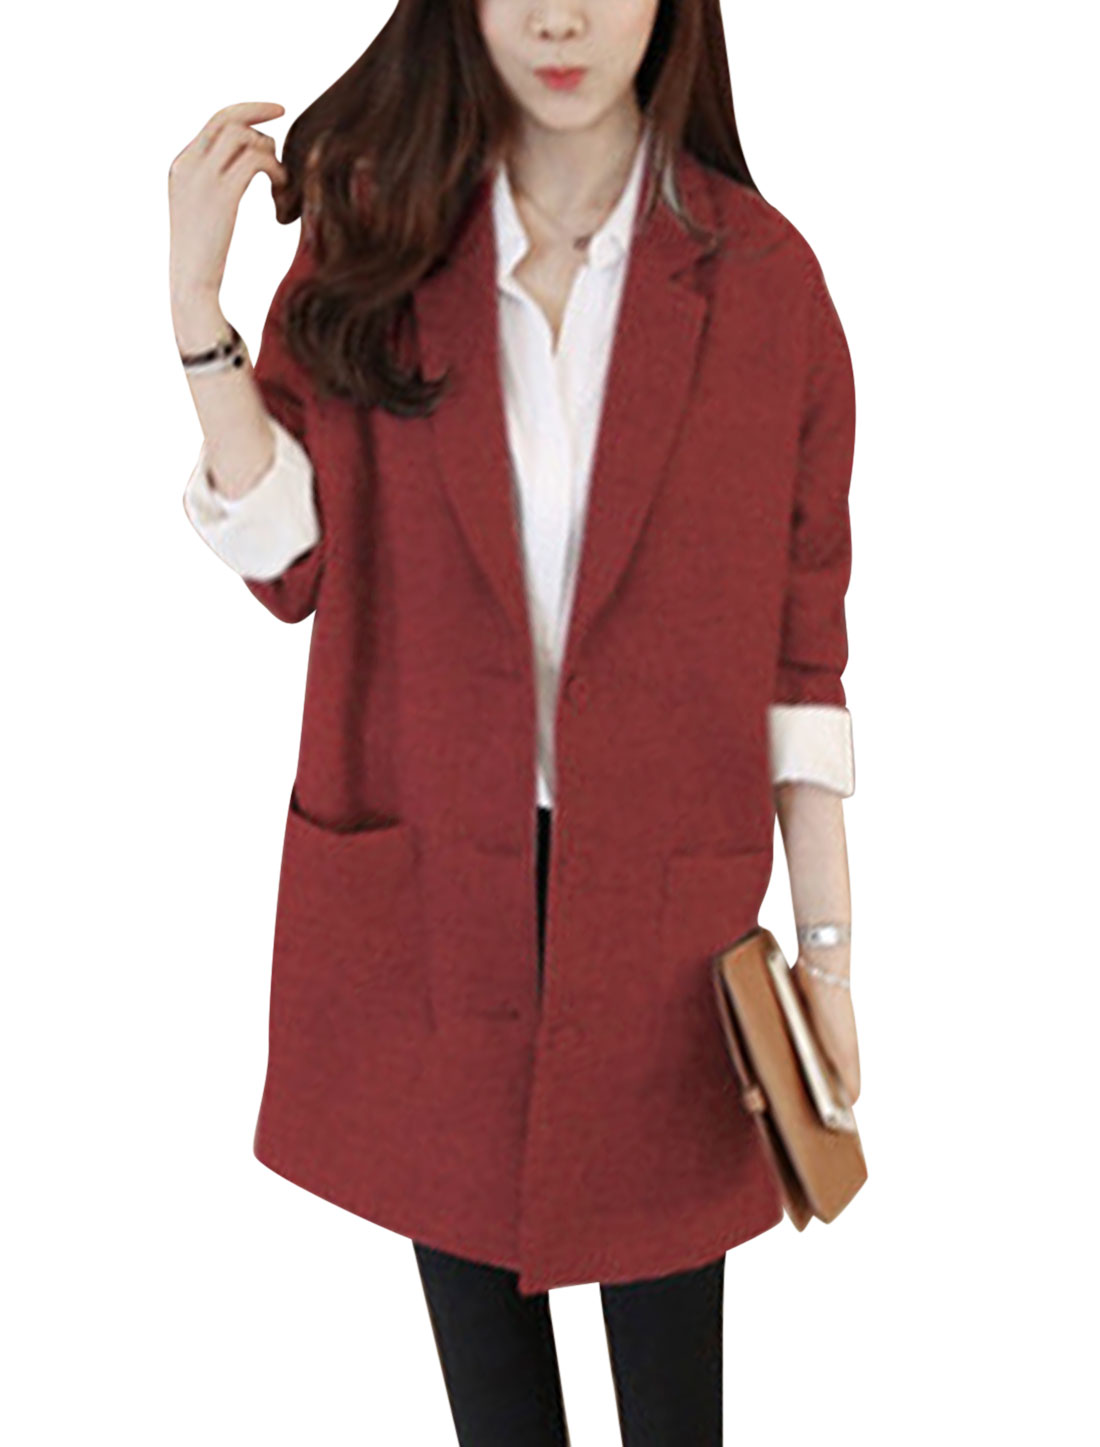 Ladies Burgundy Single Breasted Long Sleeves Front Pockets Long Jacket M